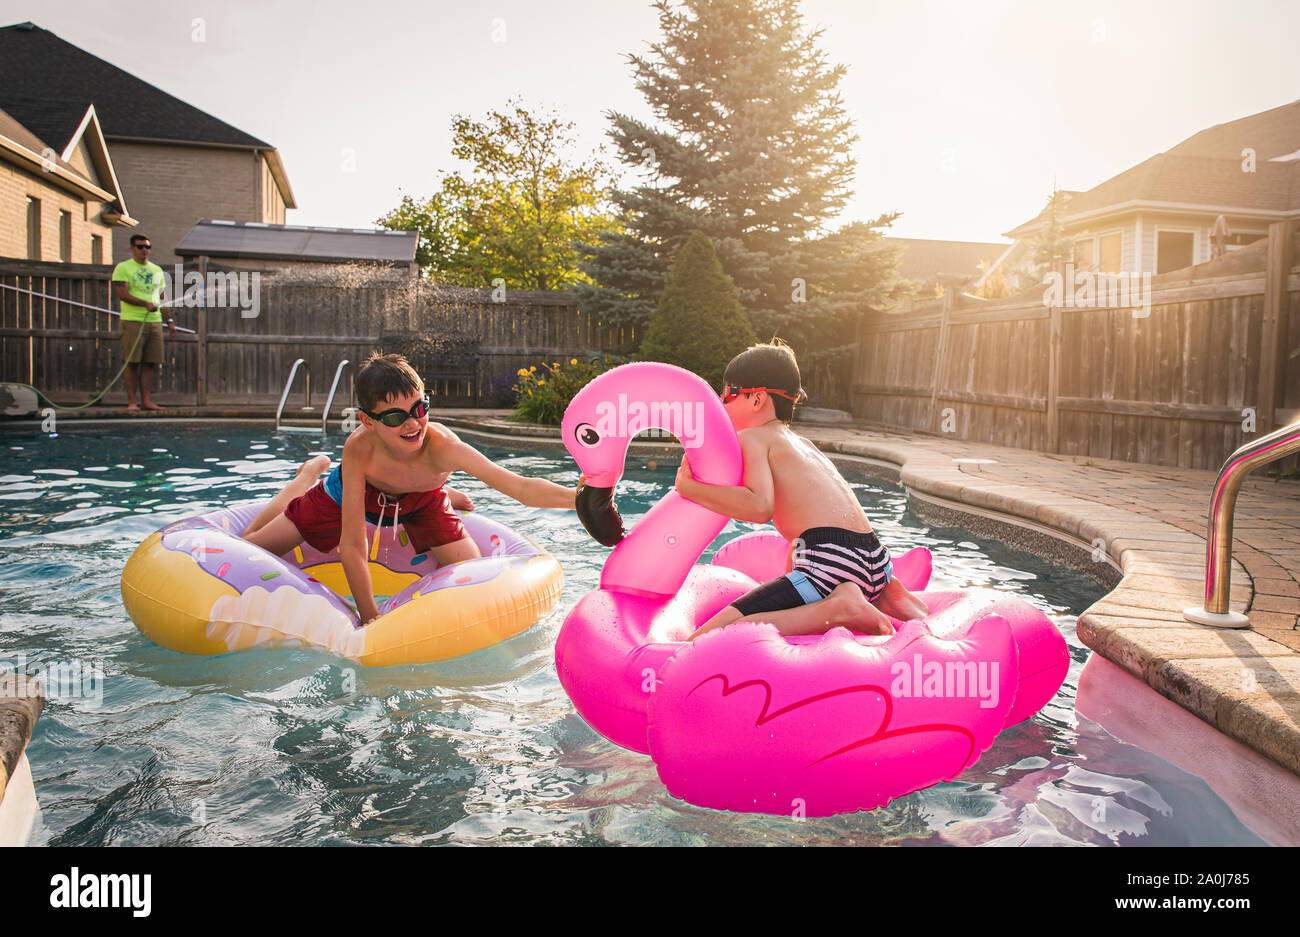 Two boys playing in a swimming pool on inflatable pool toys. Stock Photo